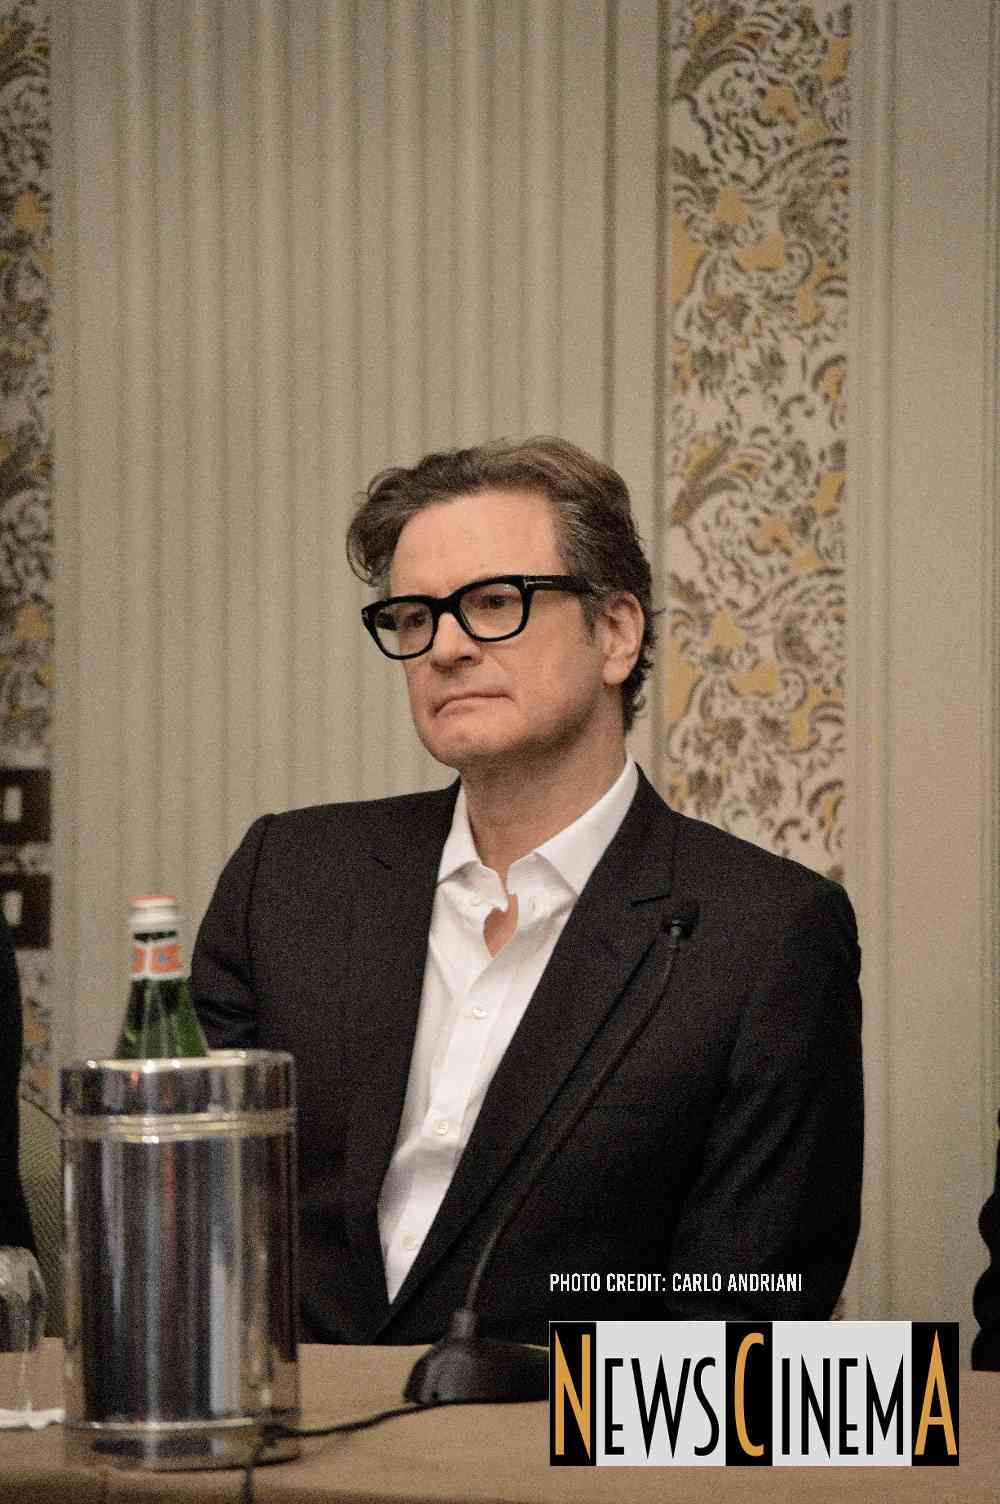 Kingsman: Secret Service anteprima a Roma, la photo gallery